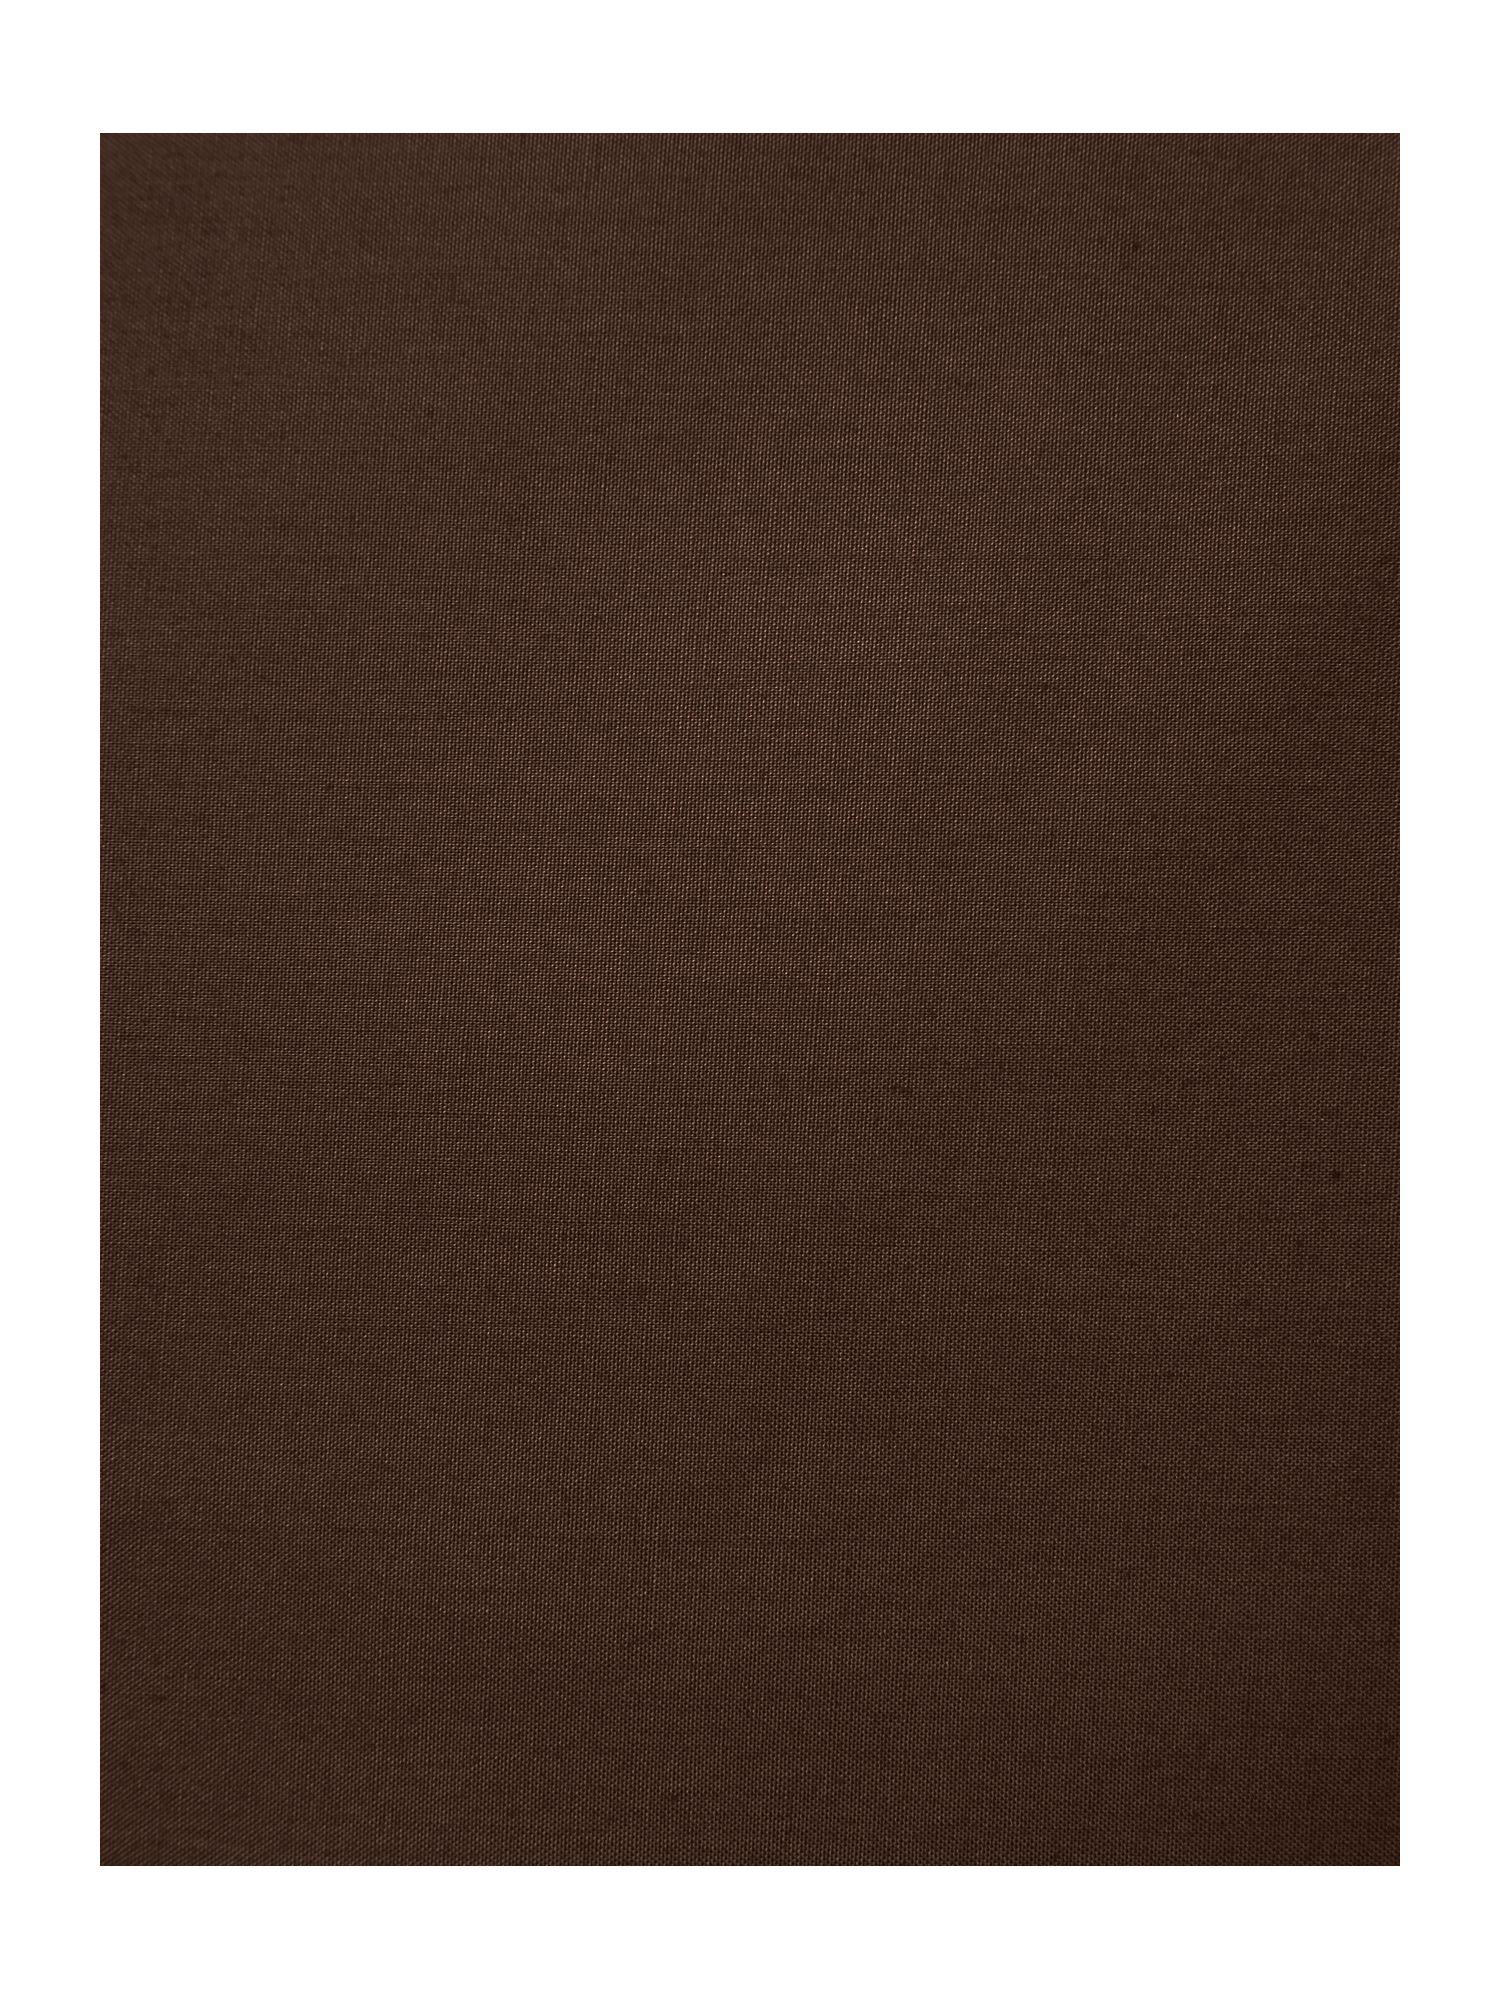 100% cotton plaindye chocolate bed linen